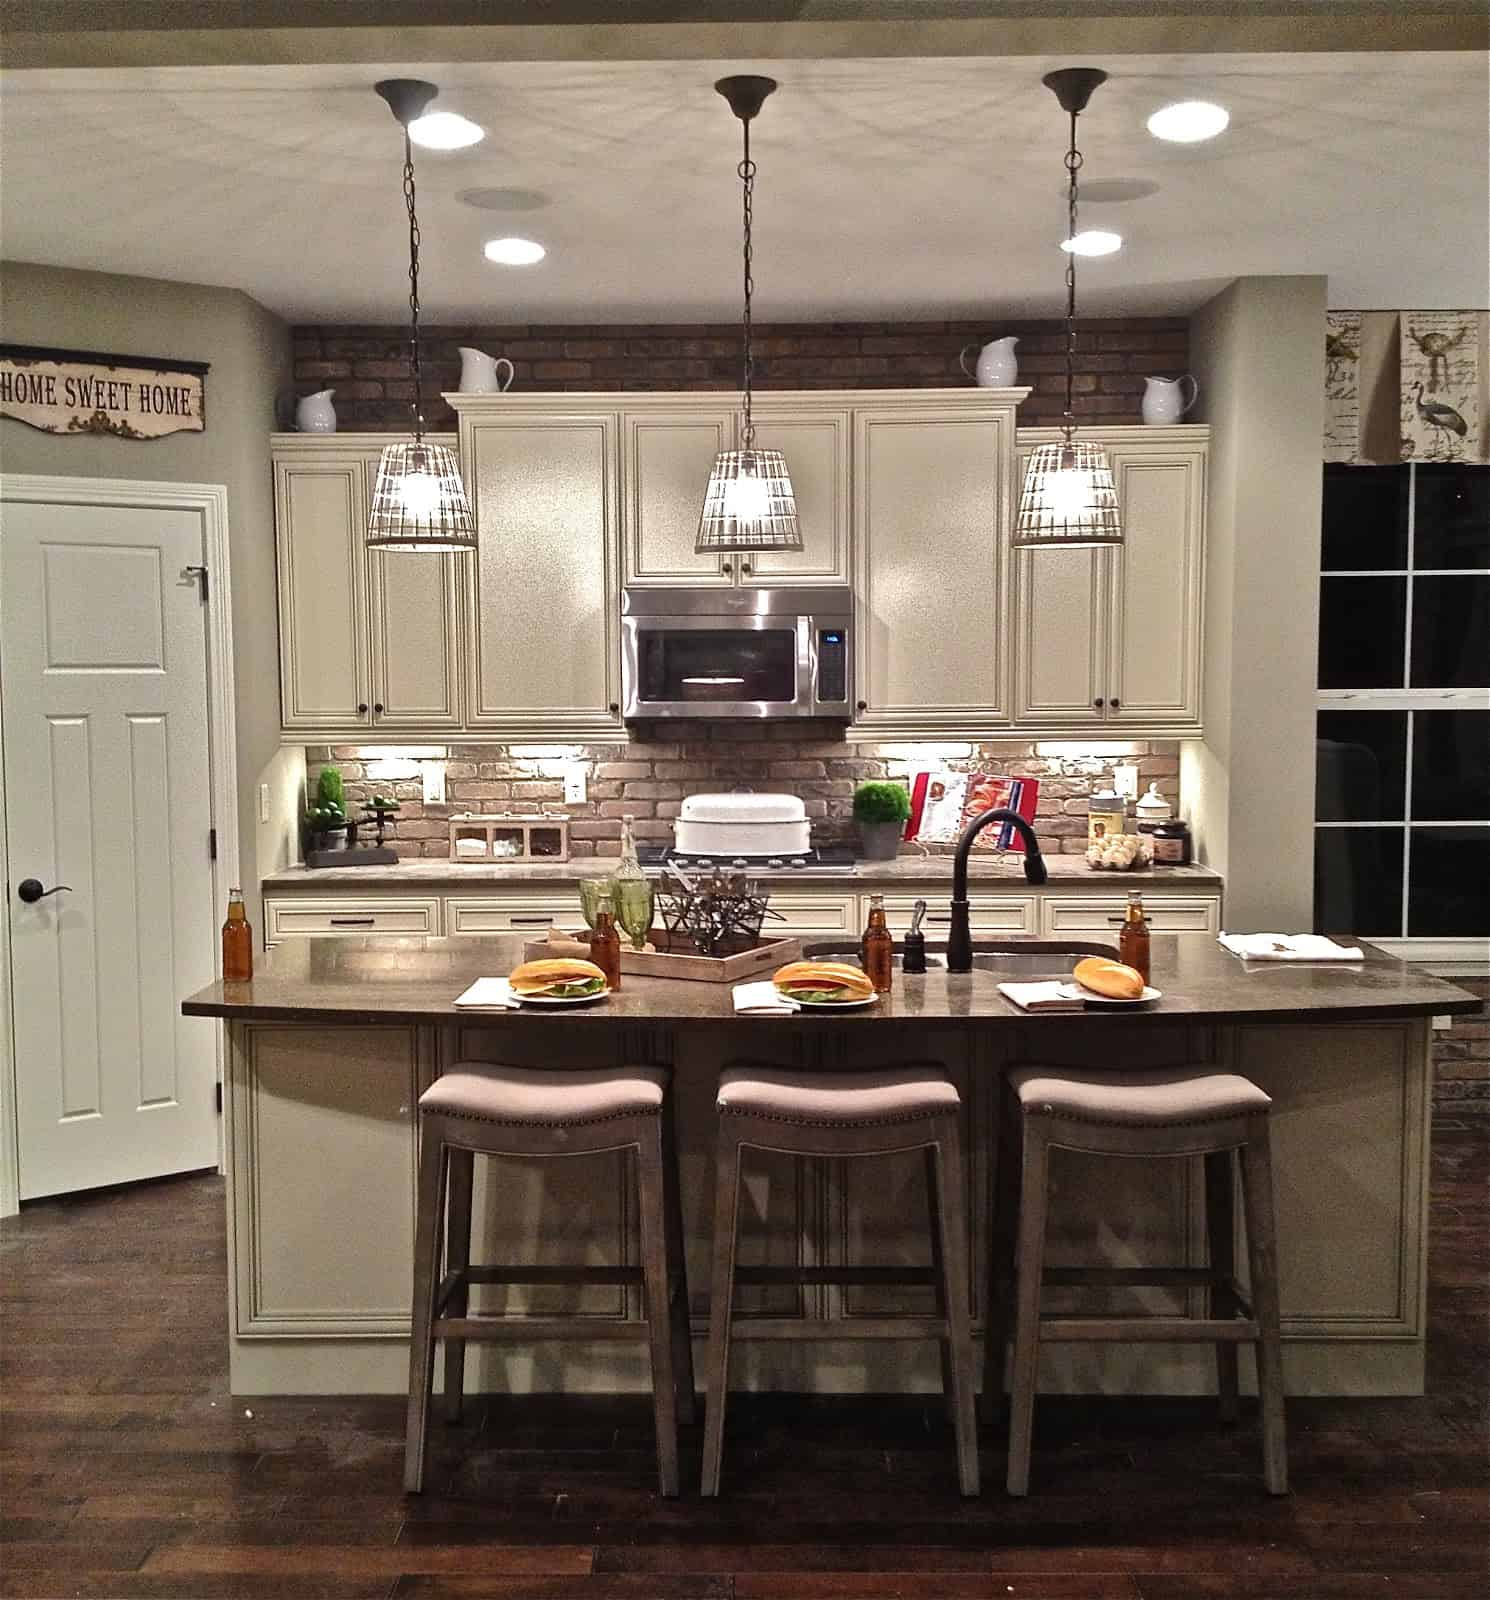 Kitchen Lighting Options: Small Kitchen Decor Options